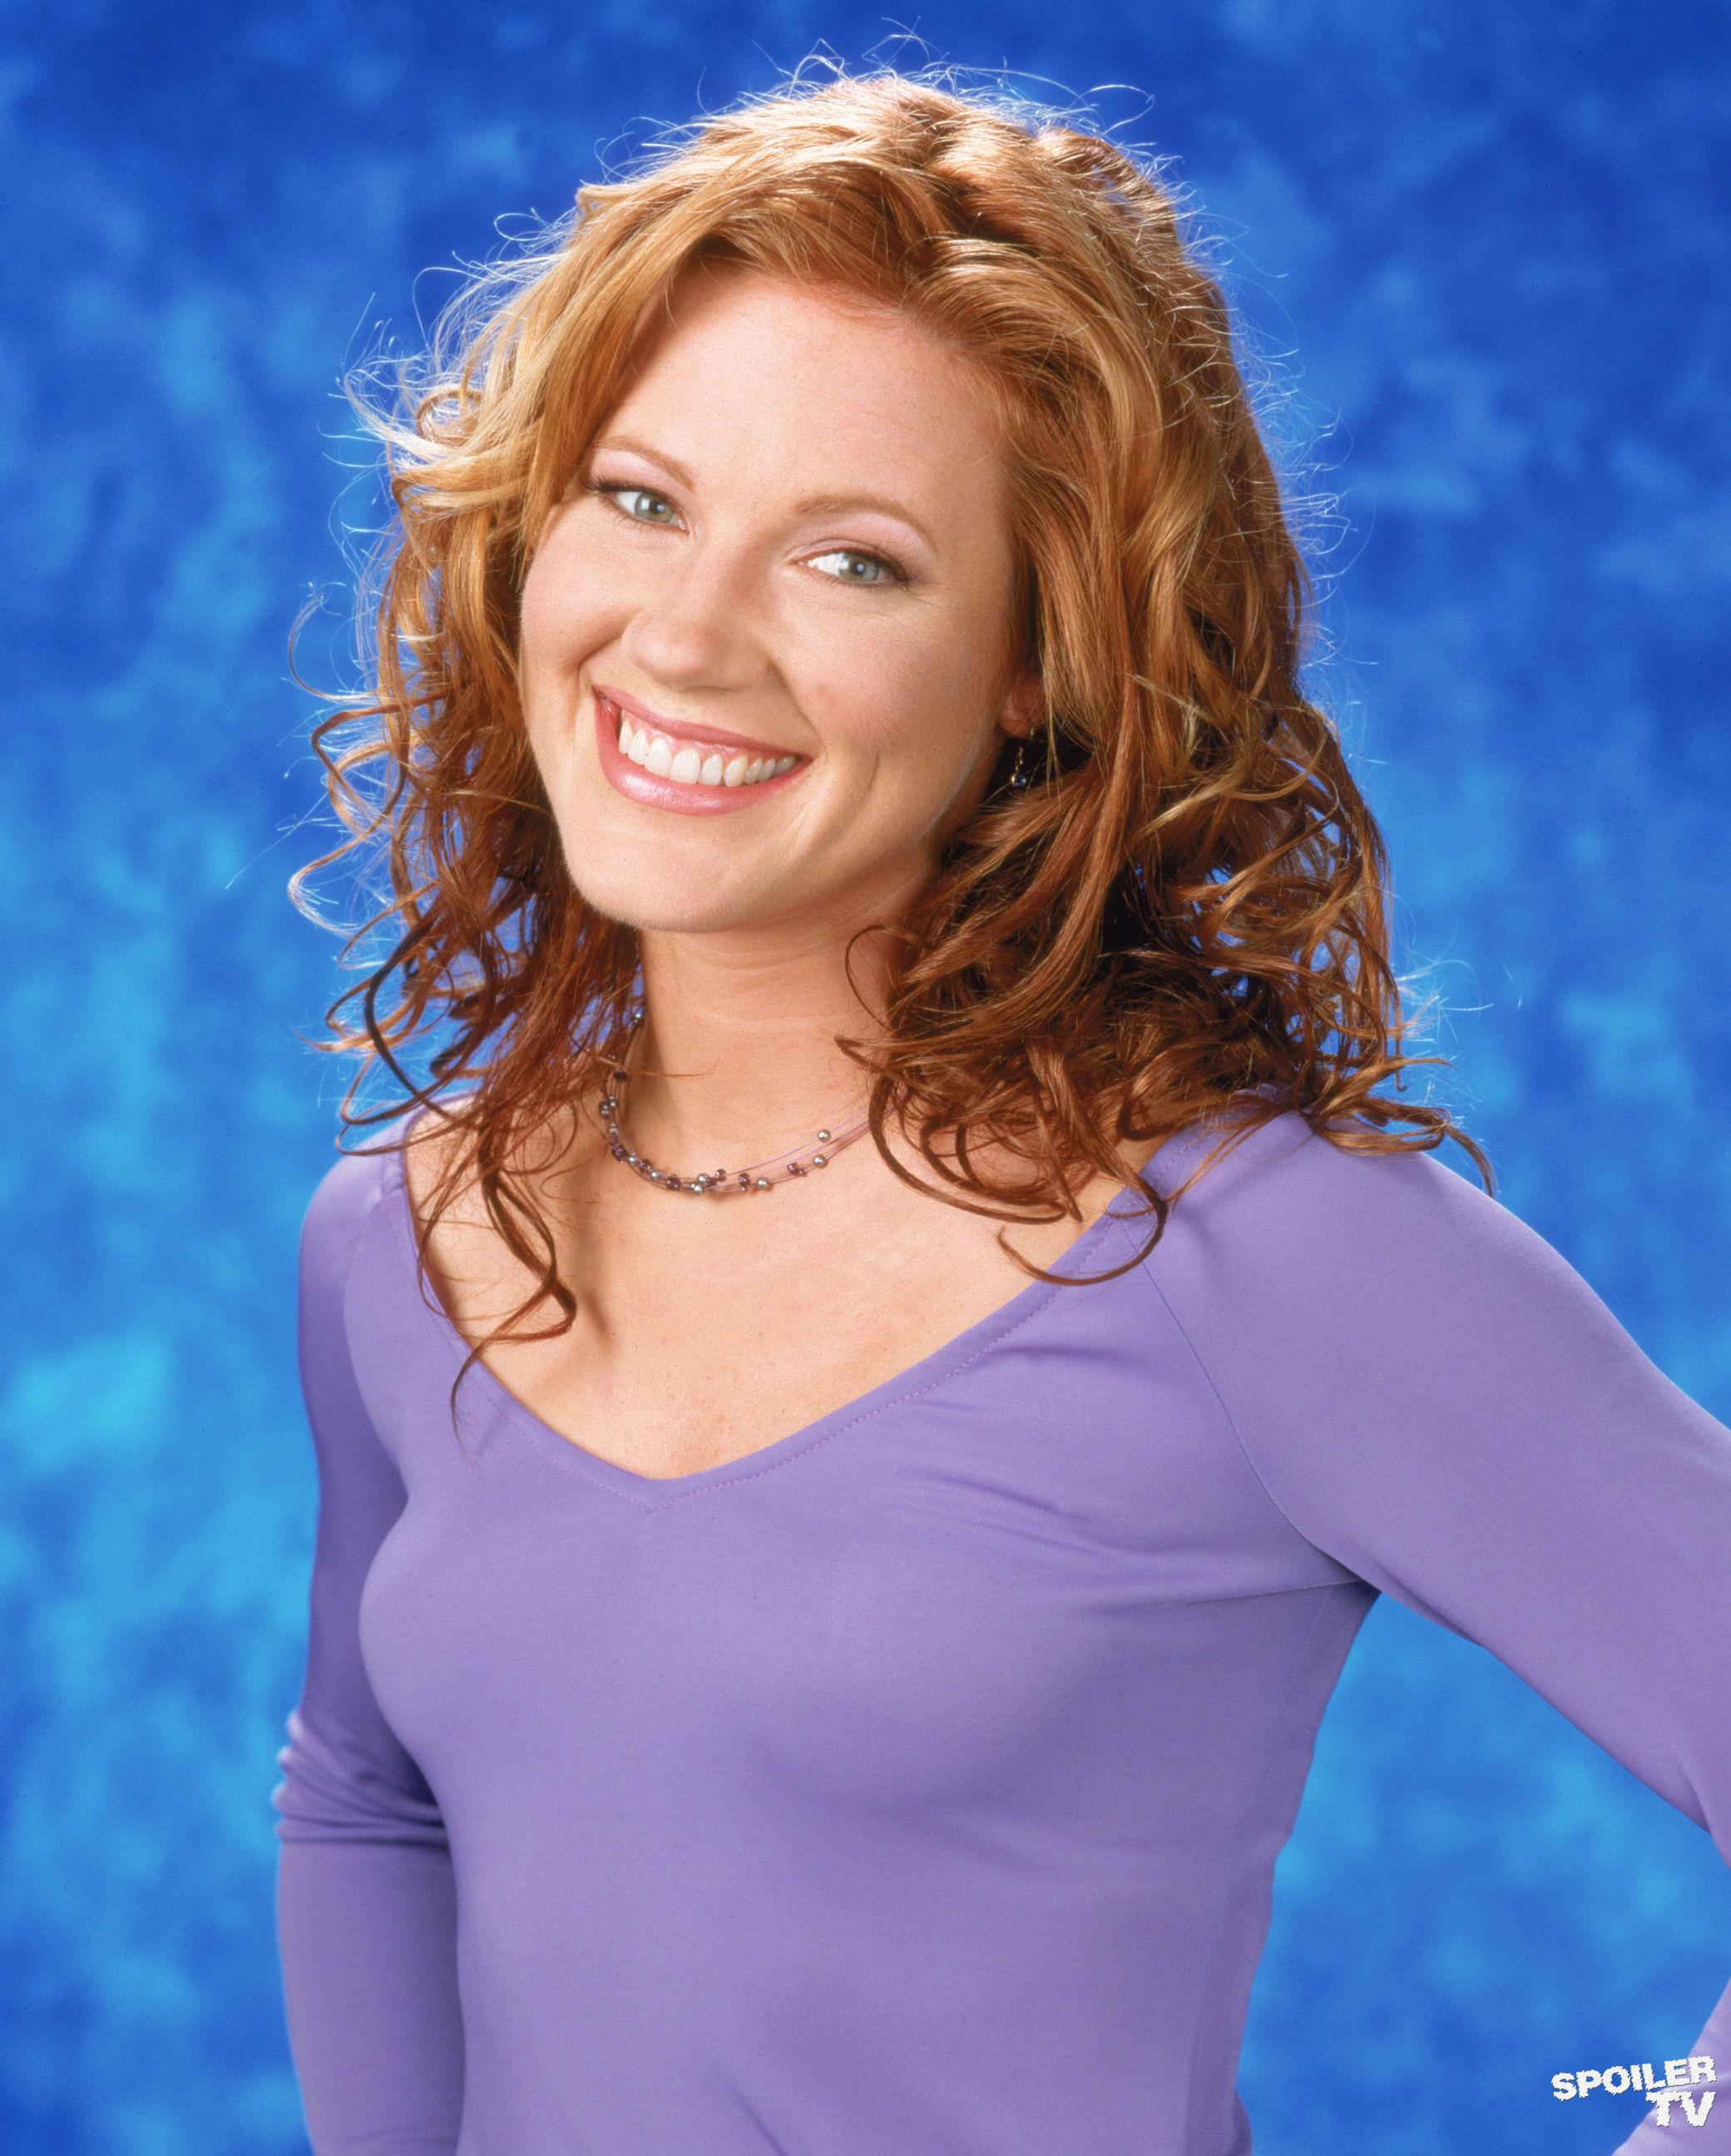 elisa donovan husbandelisa donovan wikipedia, elisa donovan, элиза донован, elisa donovan clueless, elisa donovan instagram, elisa donovan 90210, элиза донован фильмография, elisa donovan net worth, elisa donovan hot, elisa donovan imdb, elisa donovan movies, elisa donovan anorexia, elisa donovan husband, elisa donovan measurements, elisa donovan christmas films